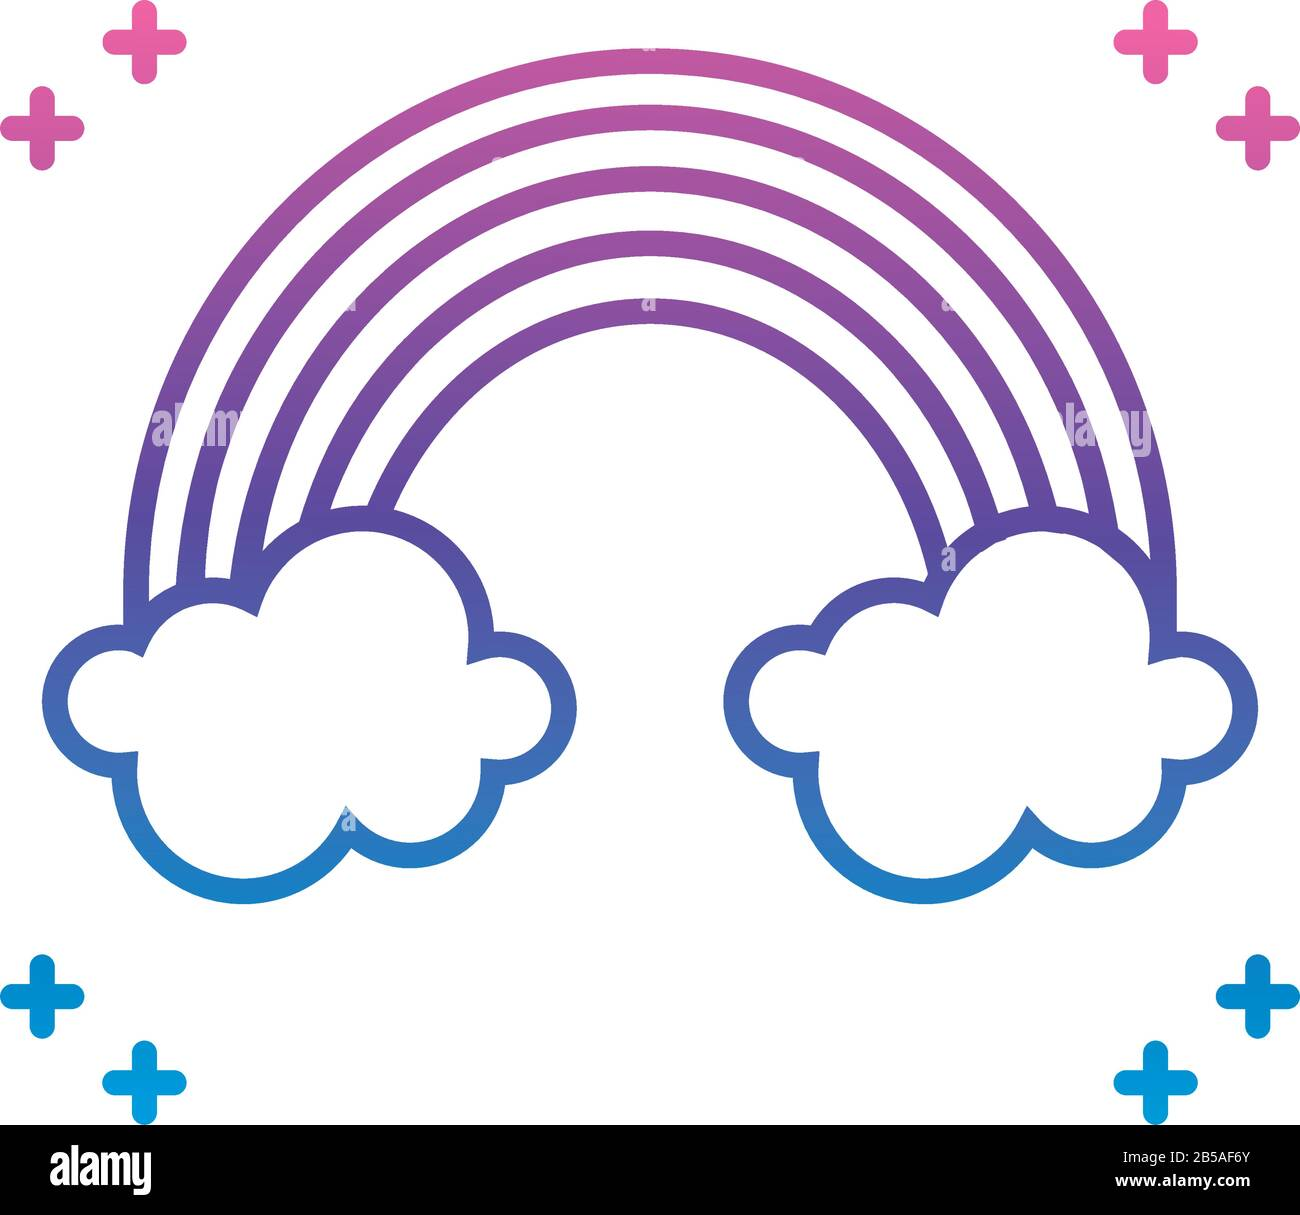 rainbow and clouds icon over white background, gradient line style, vector illustration Stock Vector